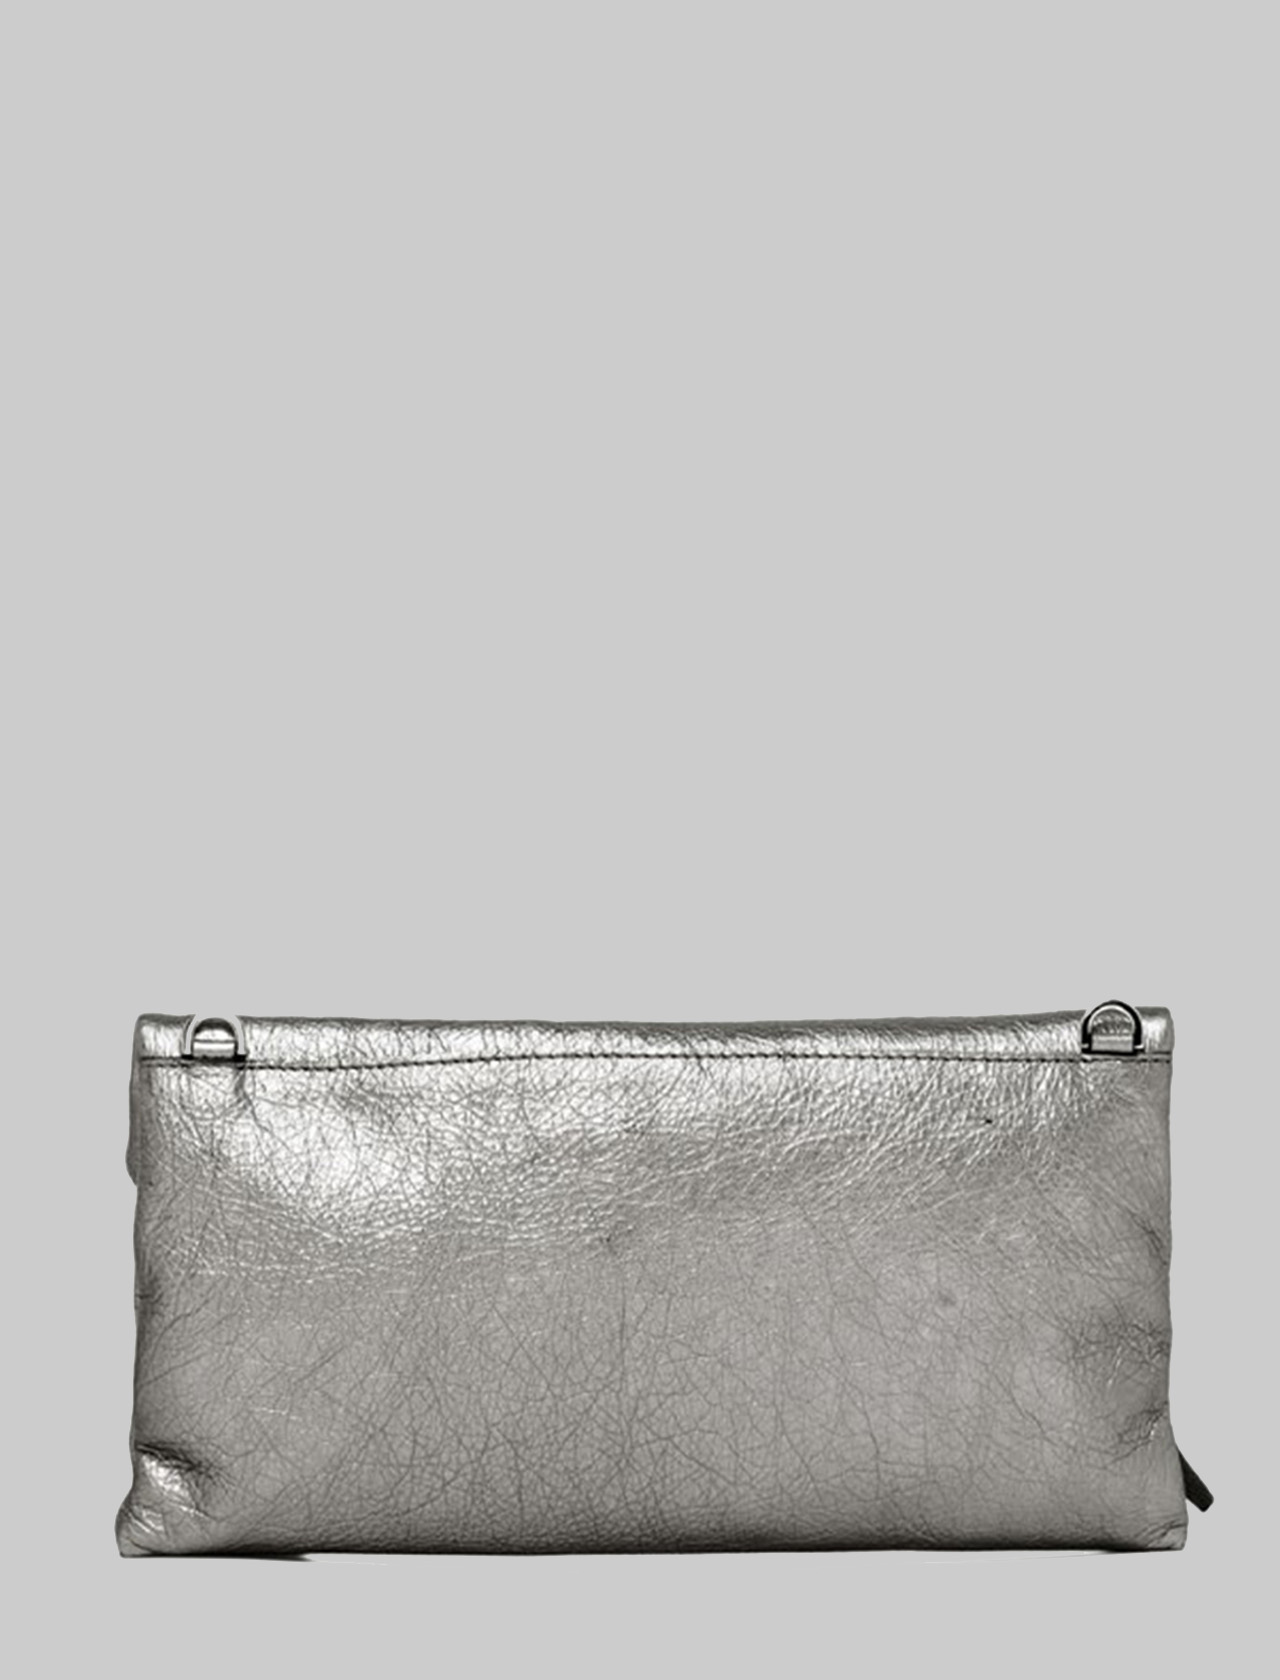 Cherry Women's Clutch Bag In Silver Laminated Leather With Tone Removable Shoulder Strap Gianni Chiarini | Bags and backpacks | BS7375359